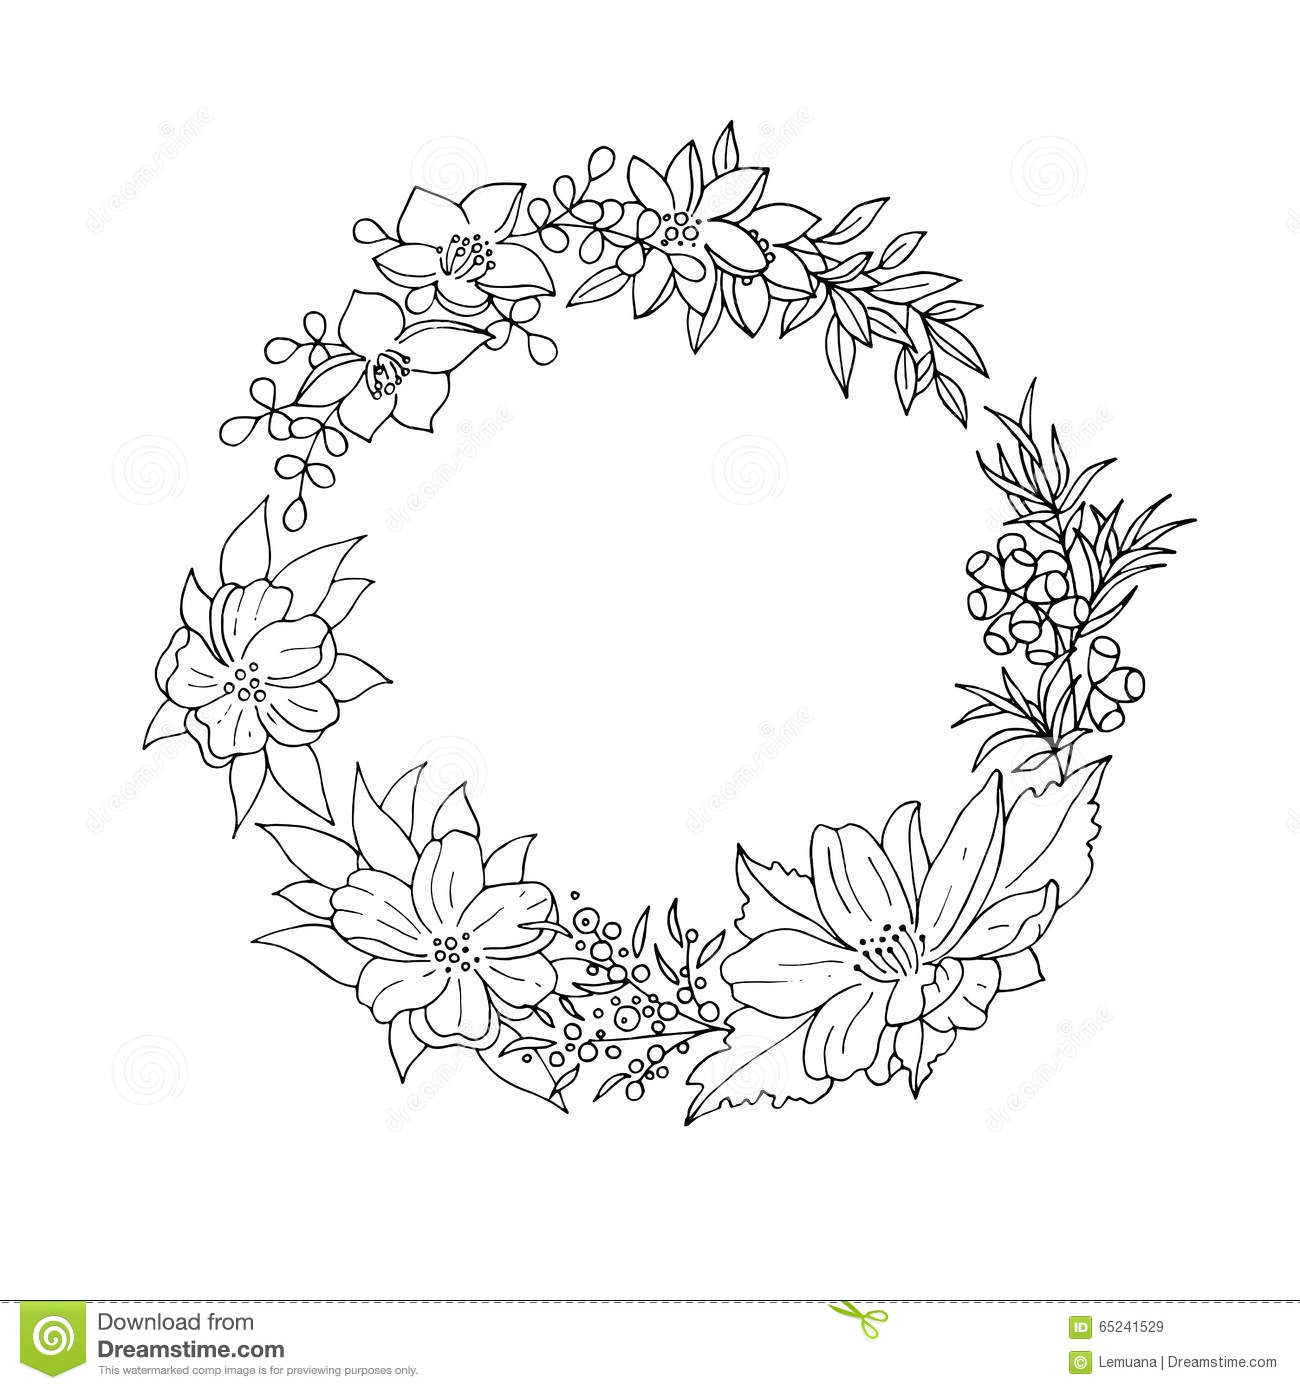 Black and white floral wreath stock vector image 65241515 - Royalty Free Vector Black Floral Flower Vintage White Wreath